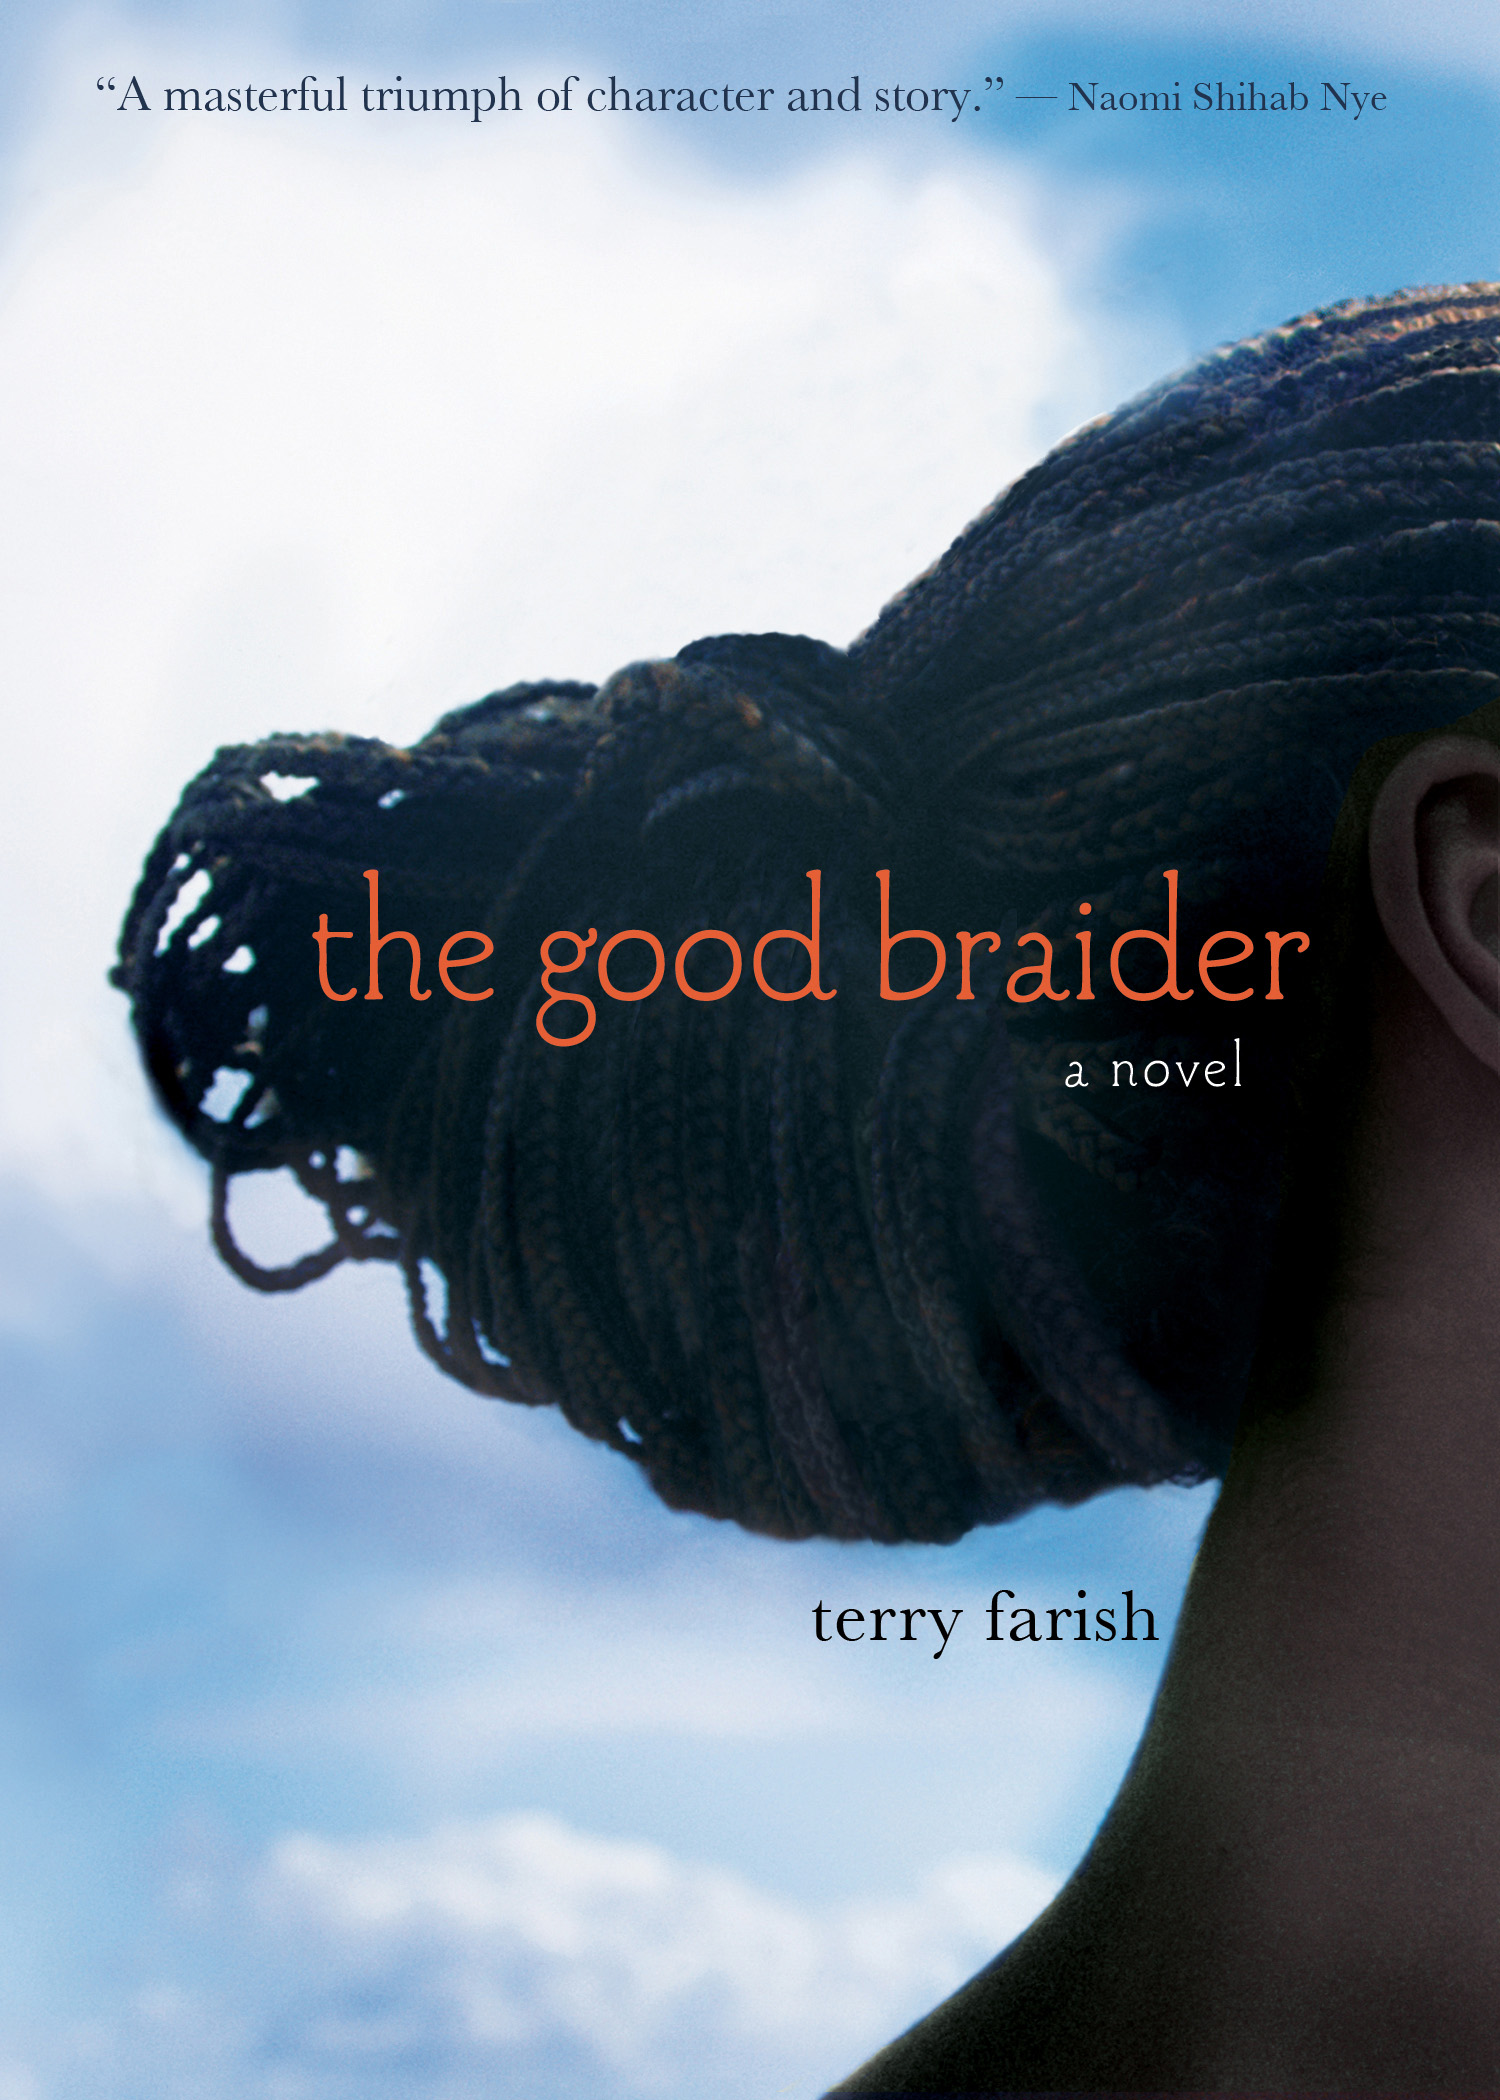 Book Club Discussion Guide The Good Braider